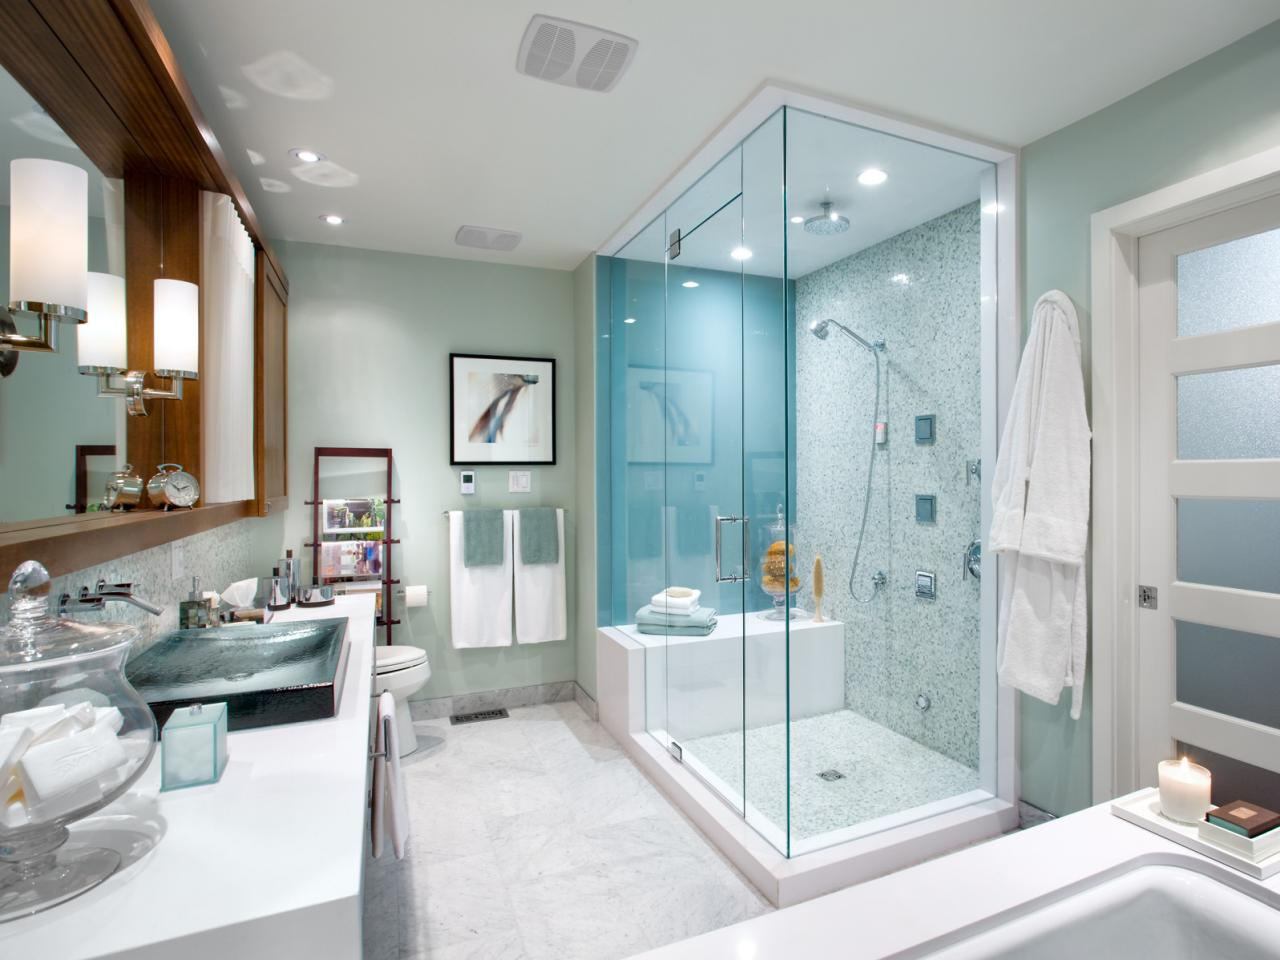 Bathroom renovation ideas from candice olson divine Master bathroom designs